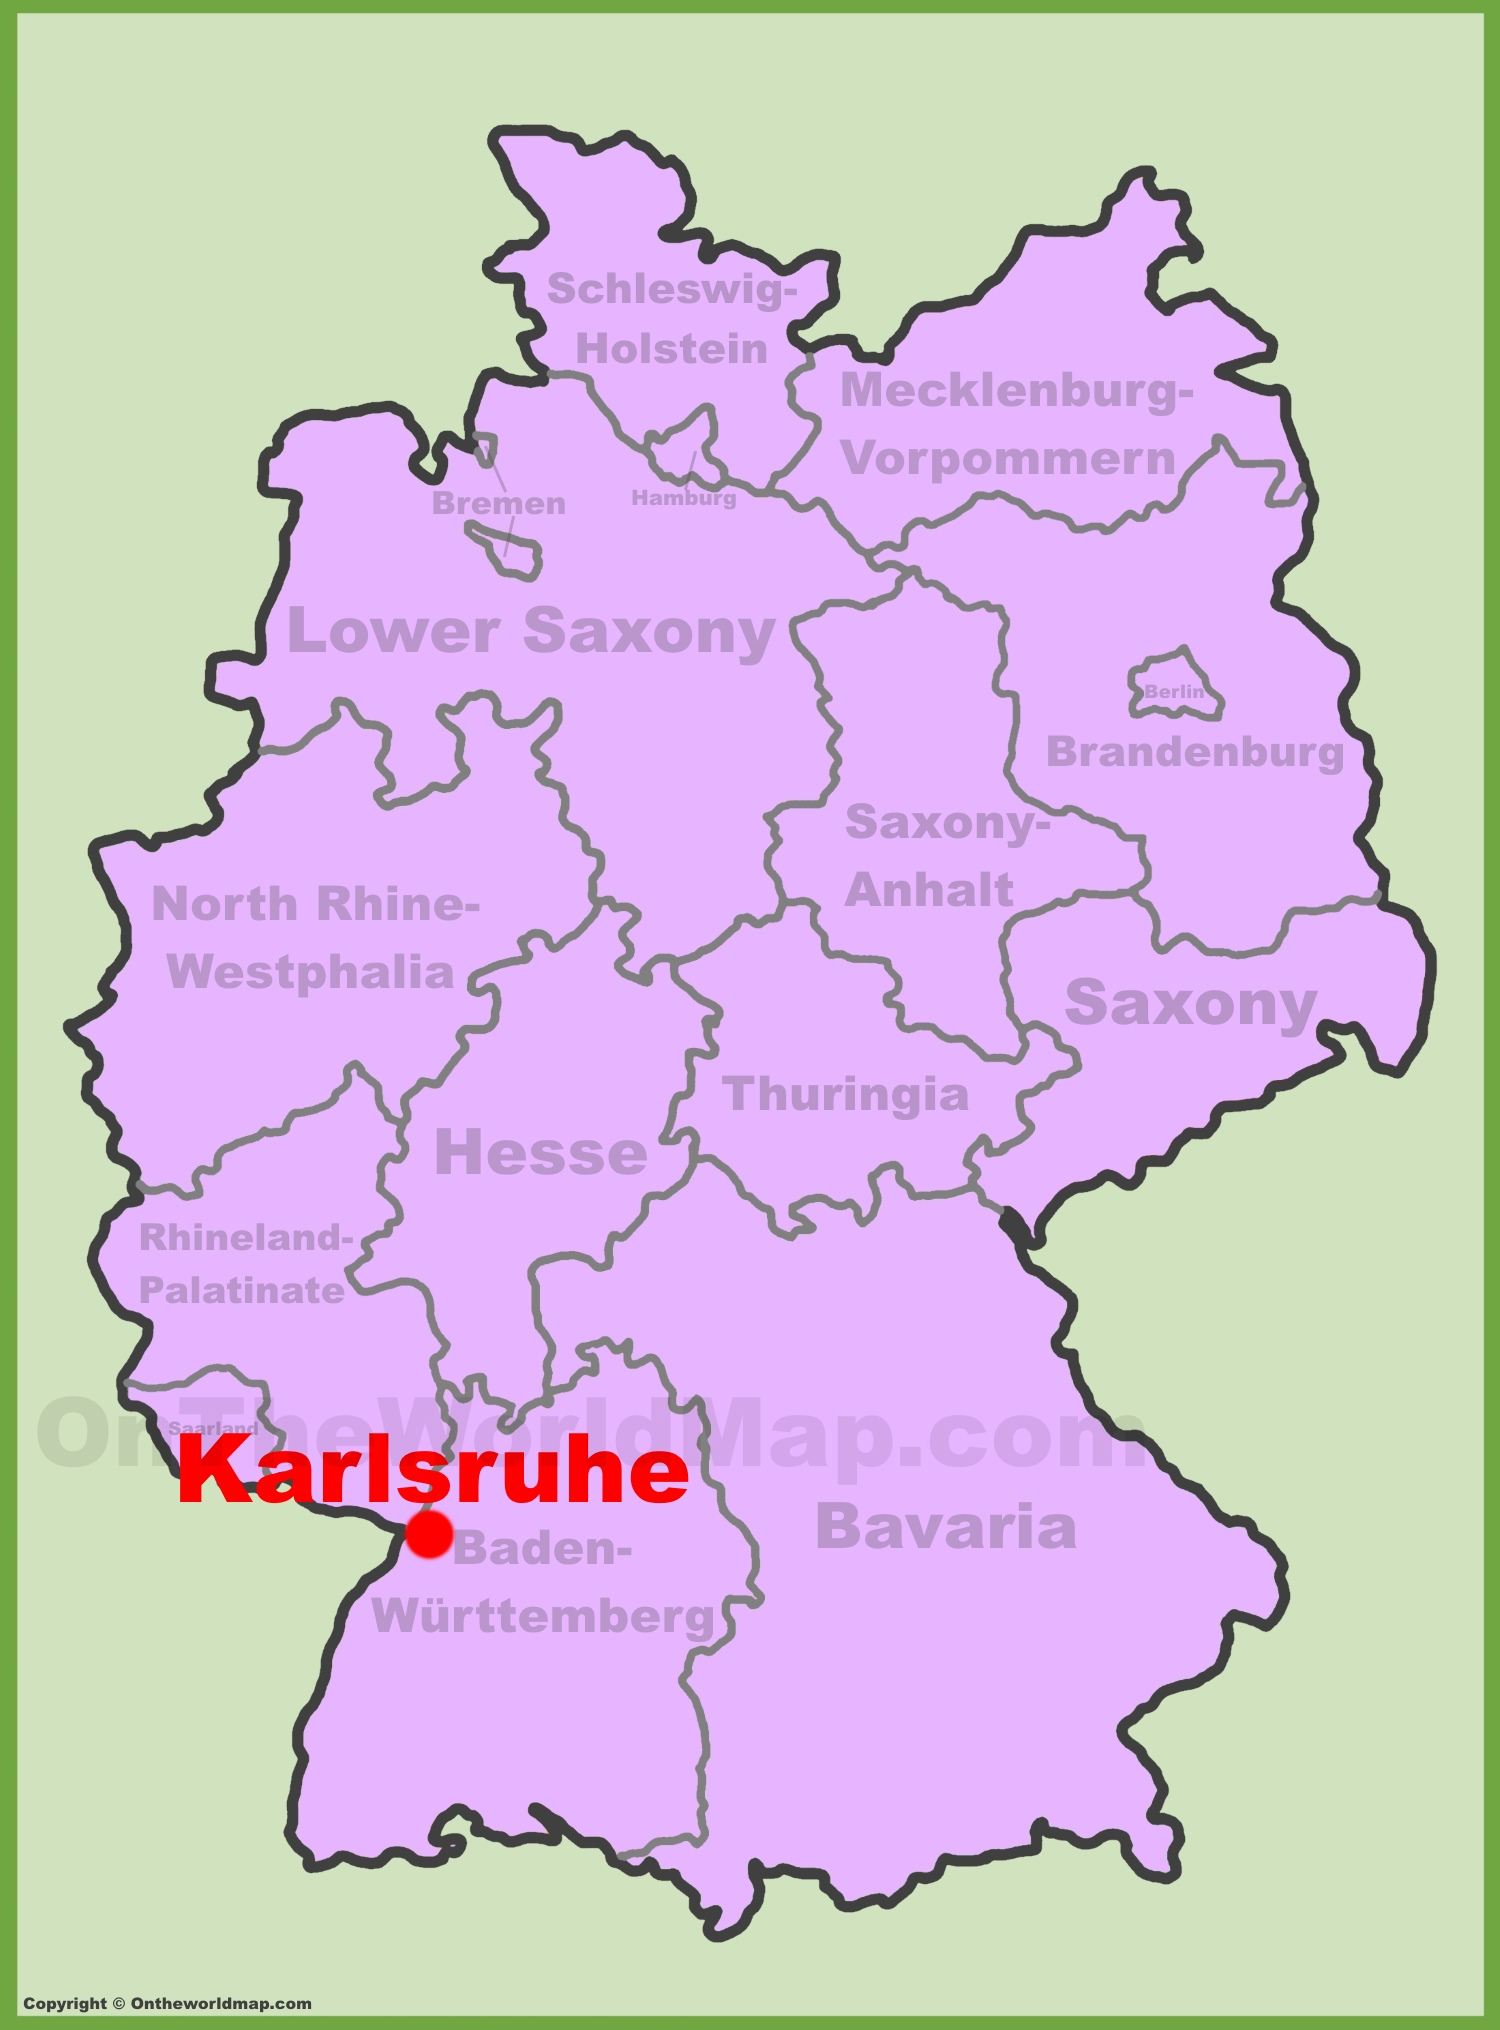 karlsruhe location on the germany map